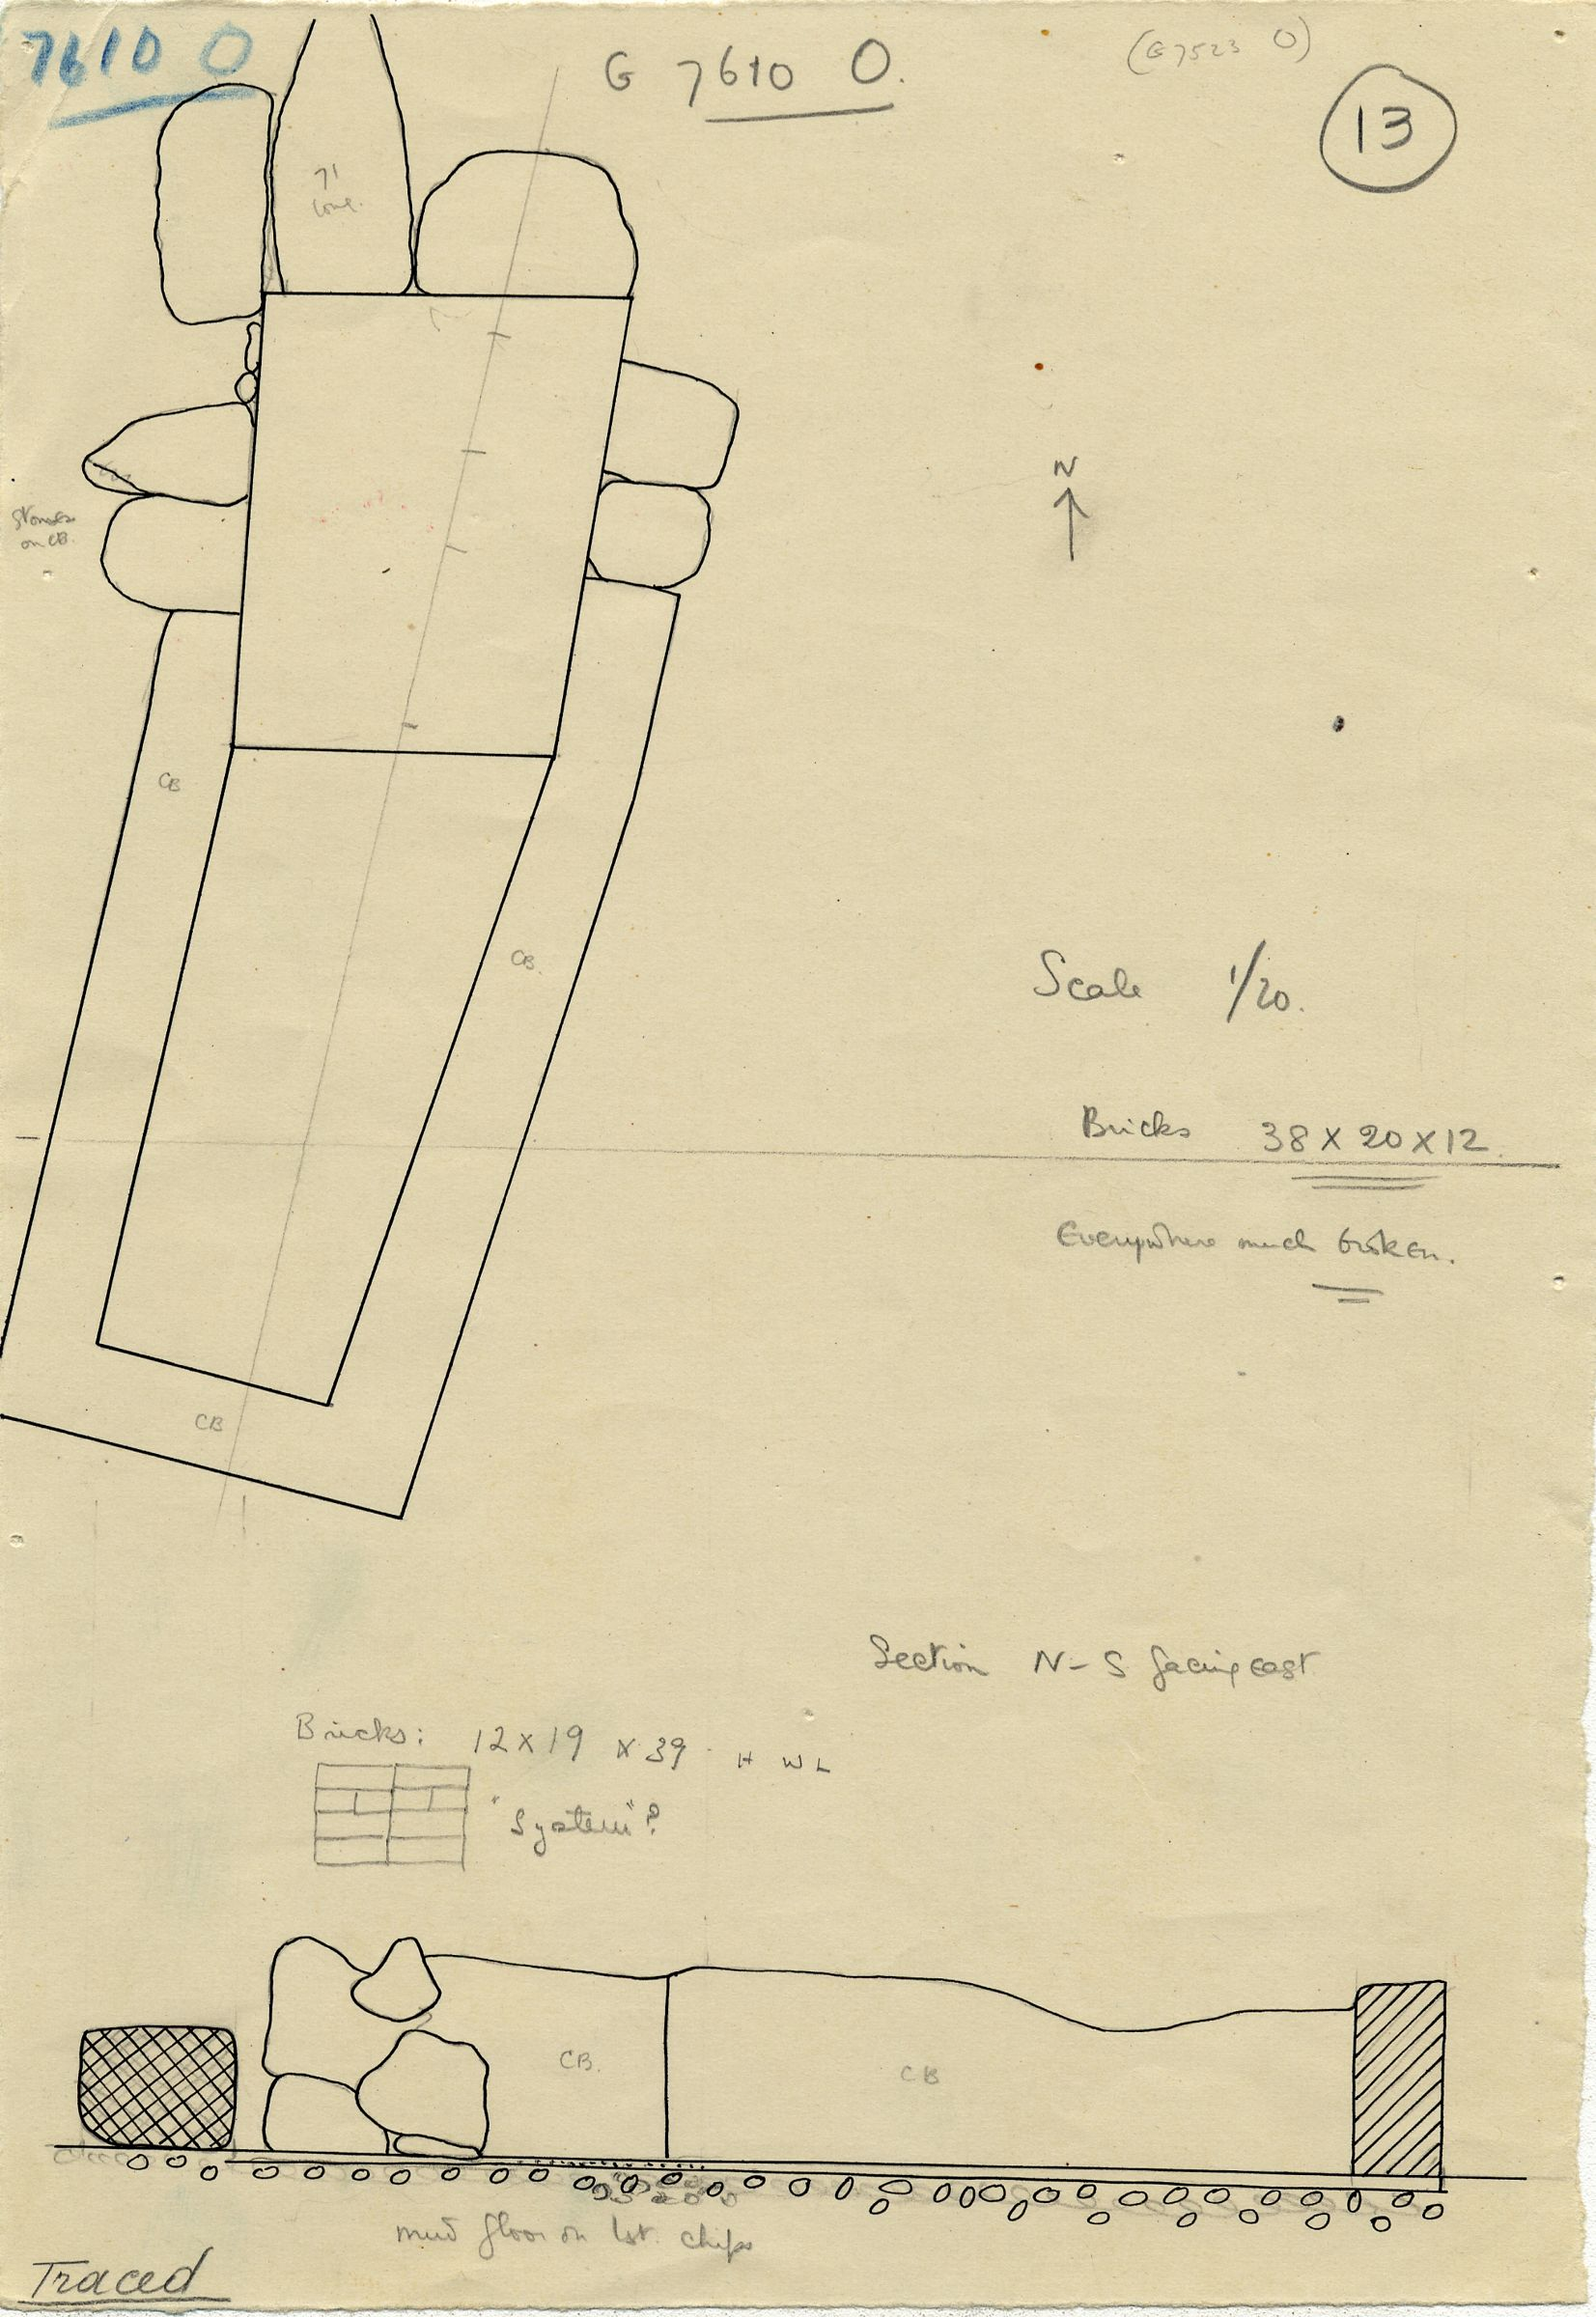 Maps and plans: G 7610+7620: G 7610, Shaft O